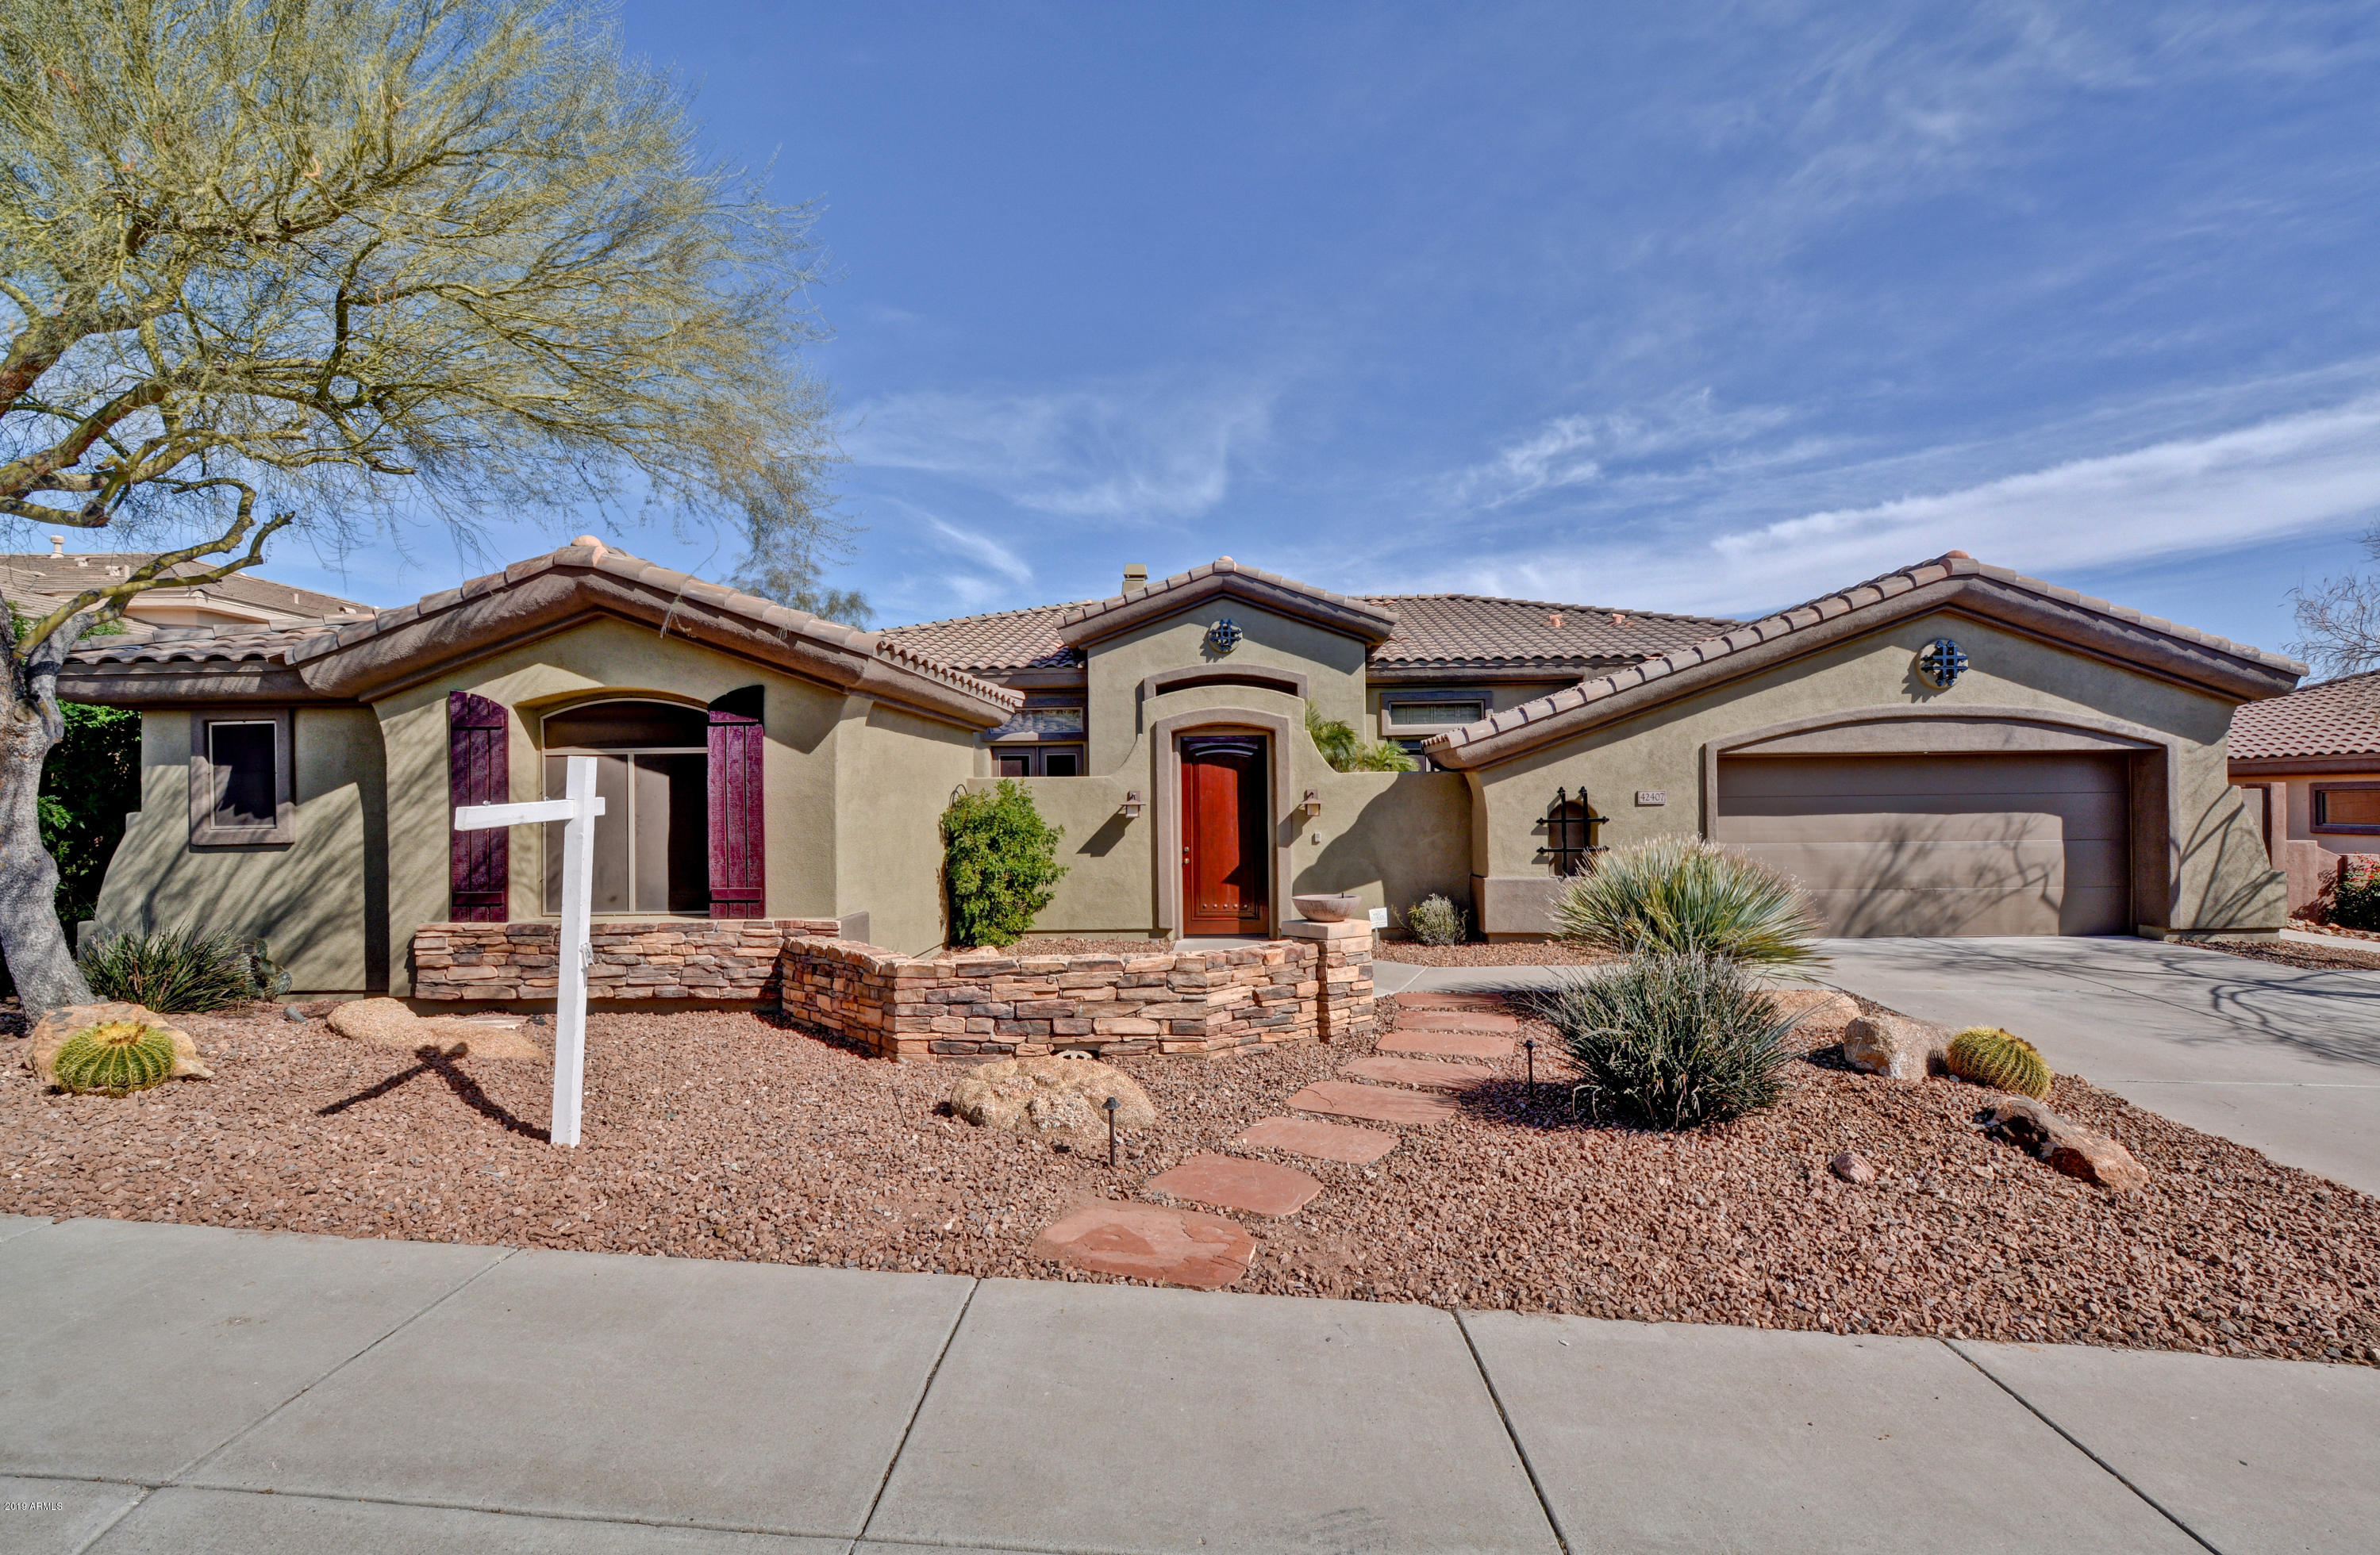 42407 N LONG COVE Way, Anthem in Maricopa County, AZ 85086 Home for Sale